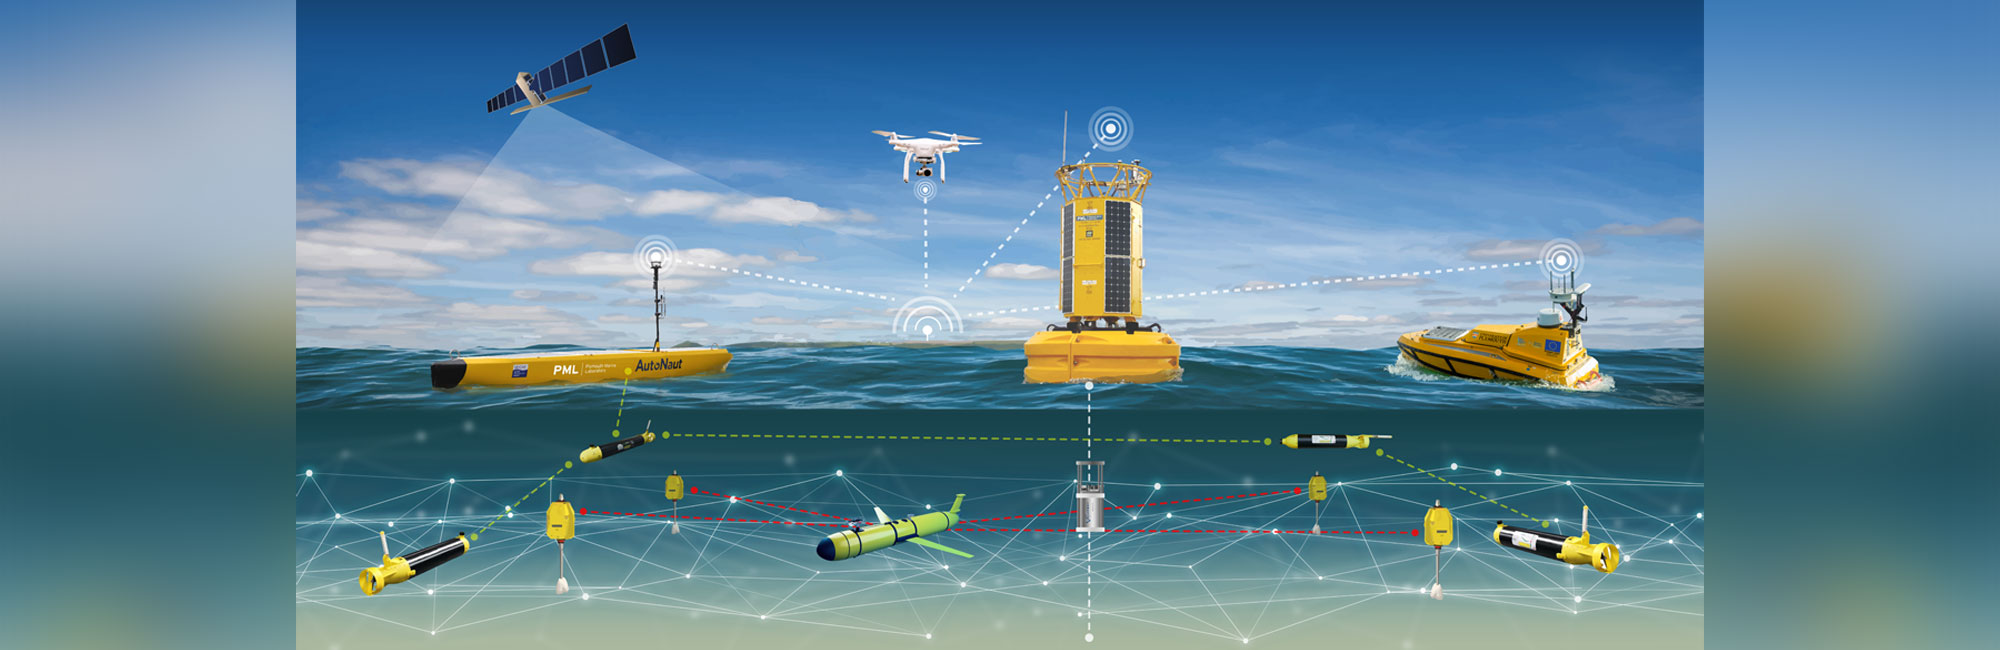 Digital illustration showing sea surface and below surface vessels and elements that make up the smart sound such as a drone, satellite, vessels and underwater gliders